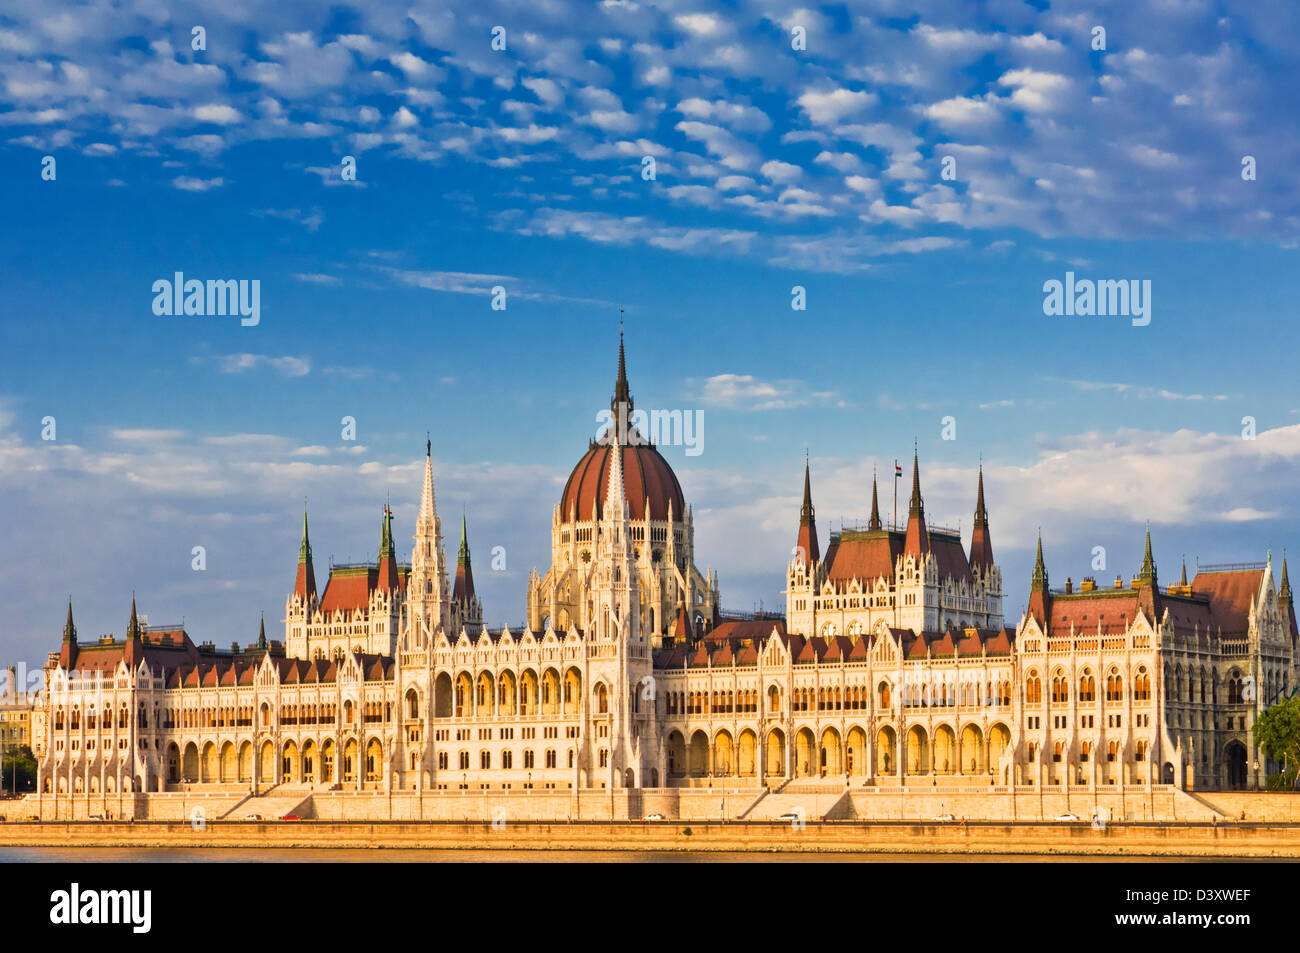 The neo-gothic Hungarian Parliament building, designed by Imre Steindl, Budapest, Hungary, Europe, Eu - Stock Image